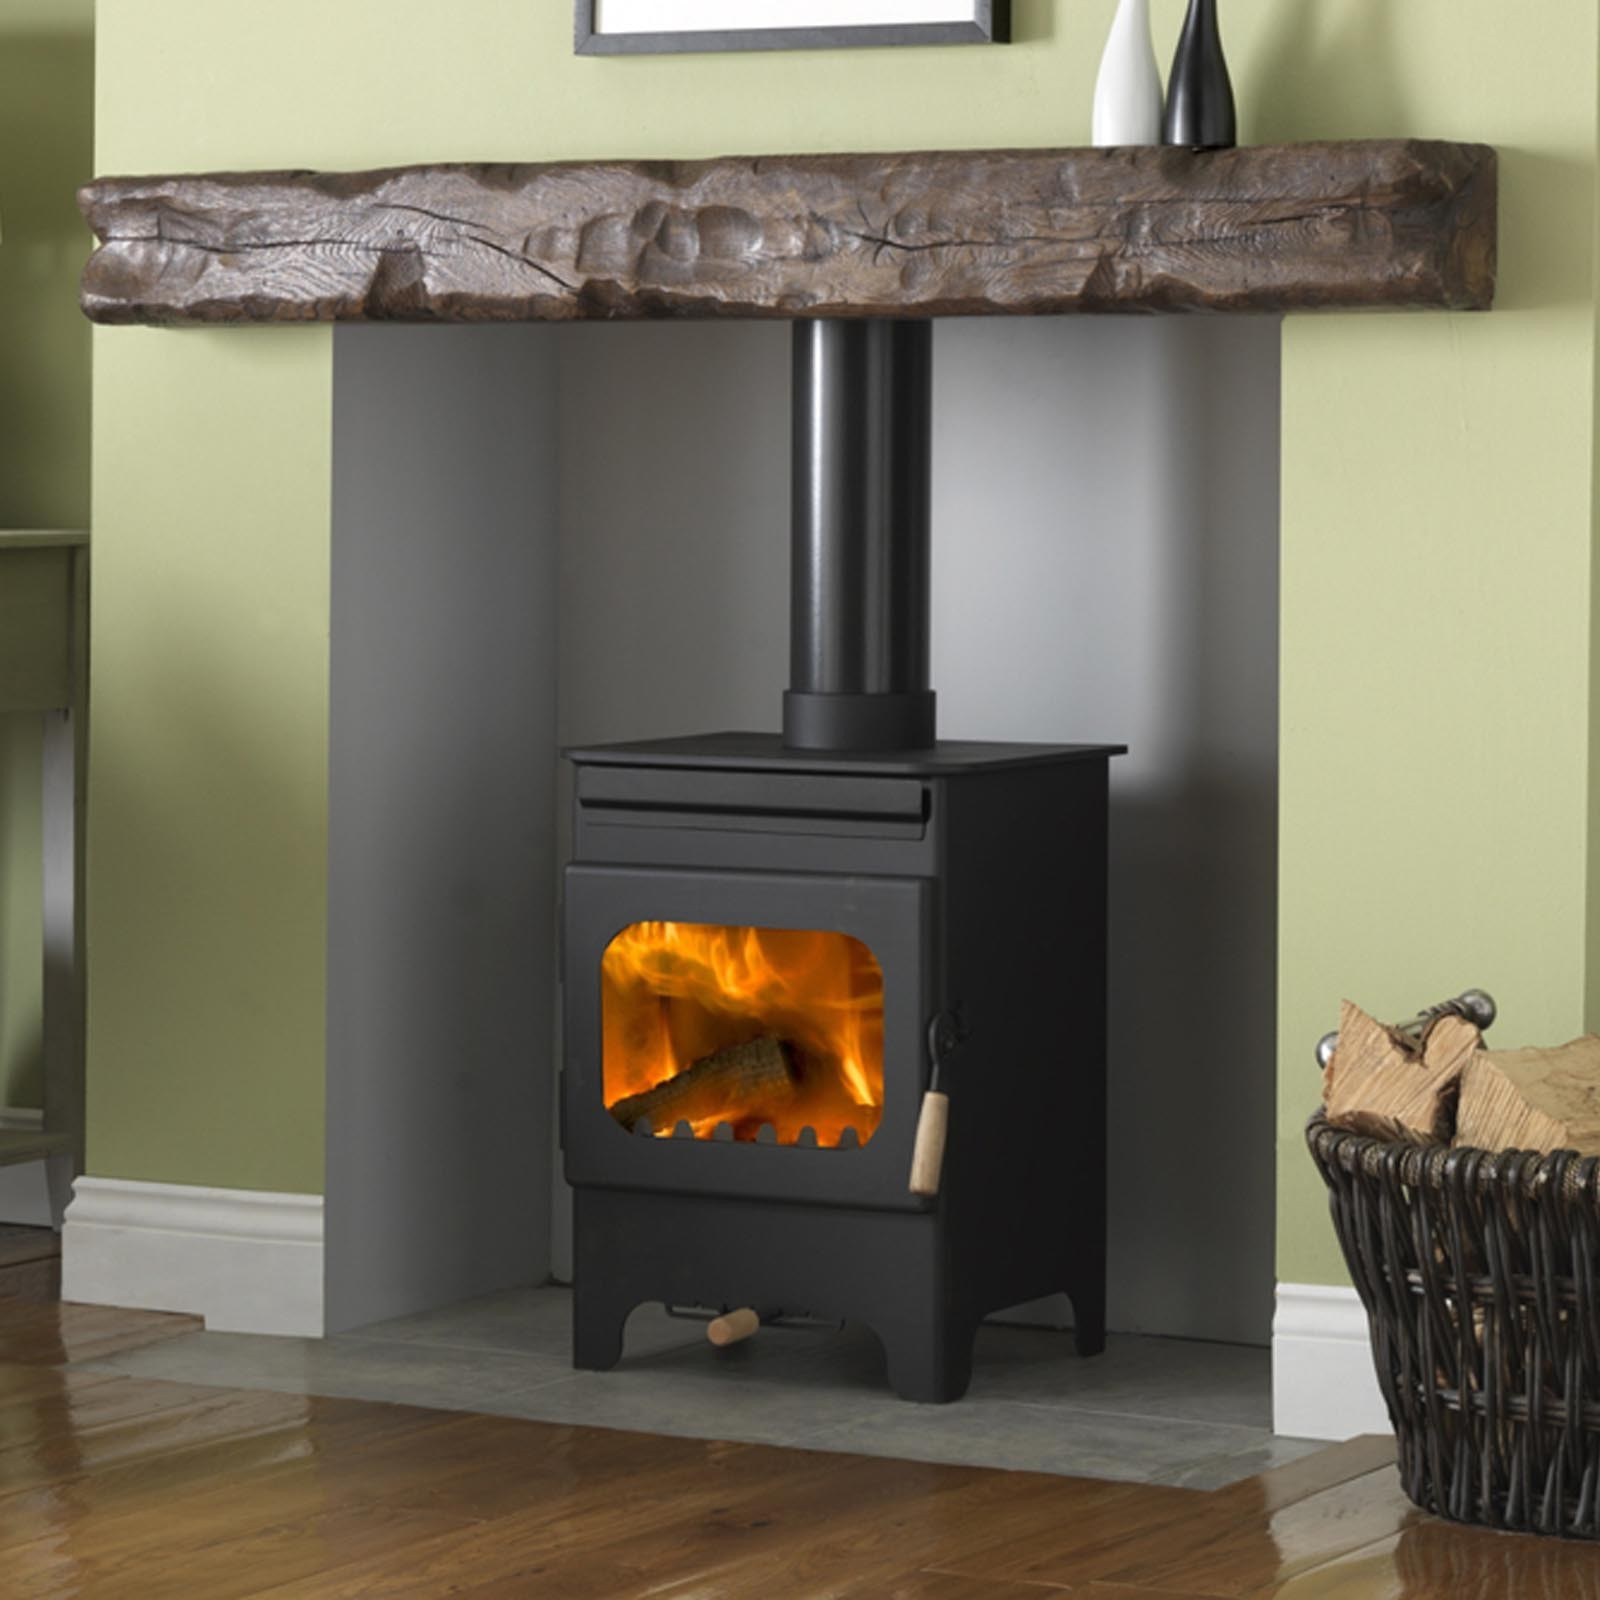 Free Uk Shipping Burley Fireball Debdale Wood Burning